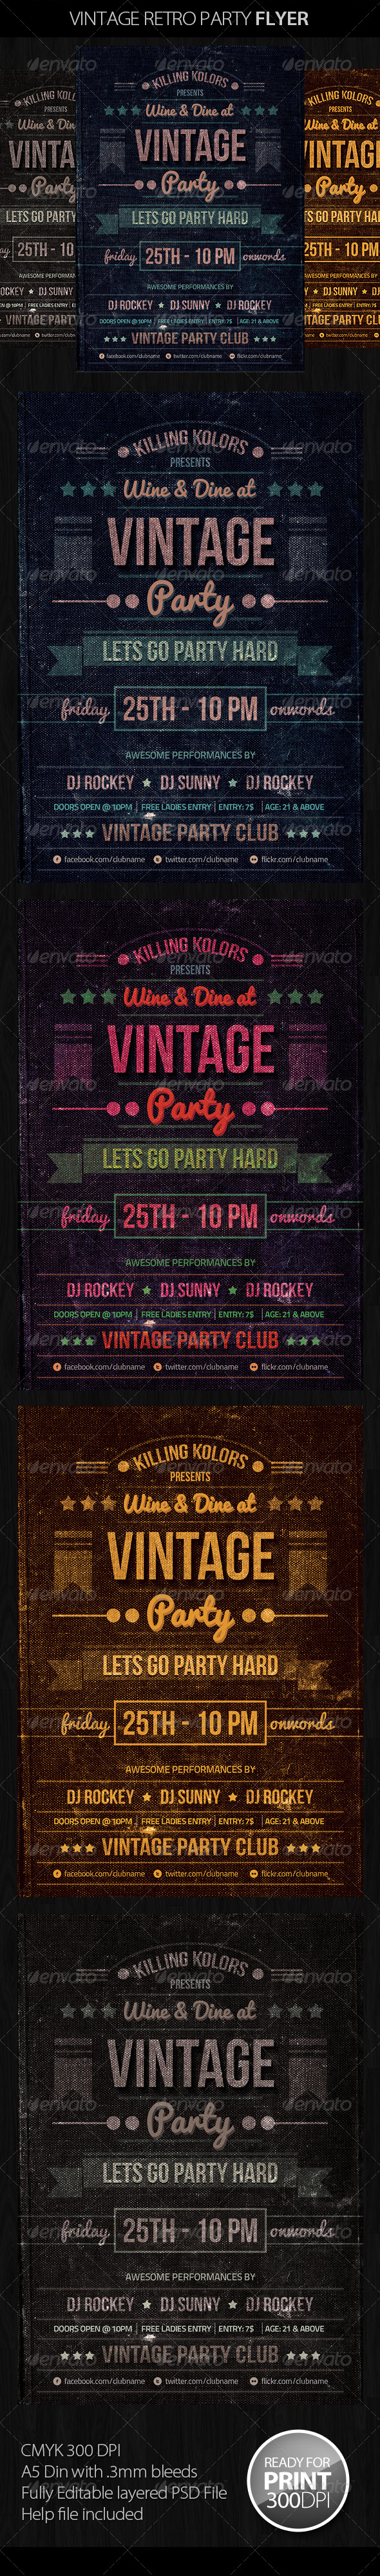 Vintage Retro Party Flyer - Clubs & Parties Events